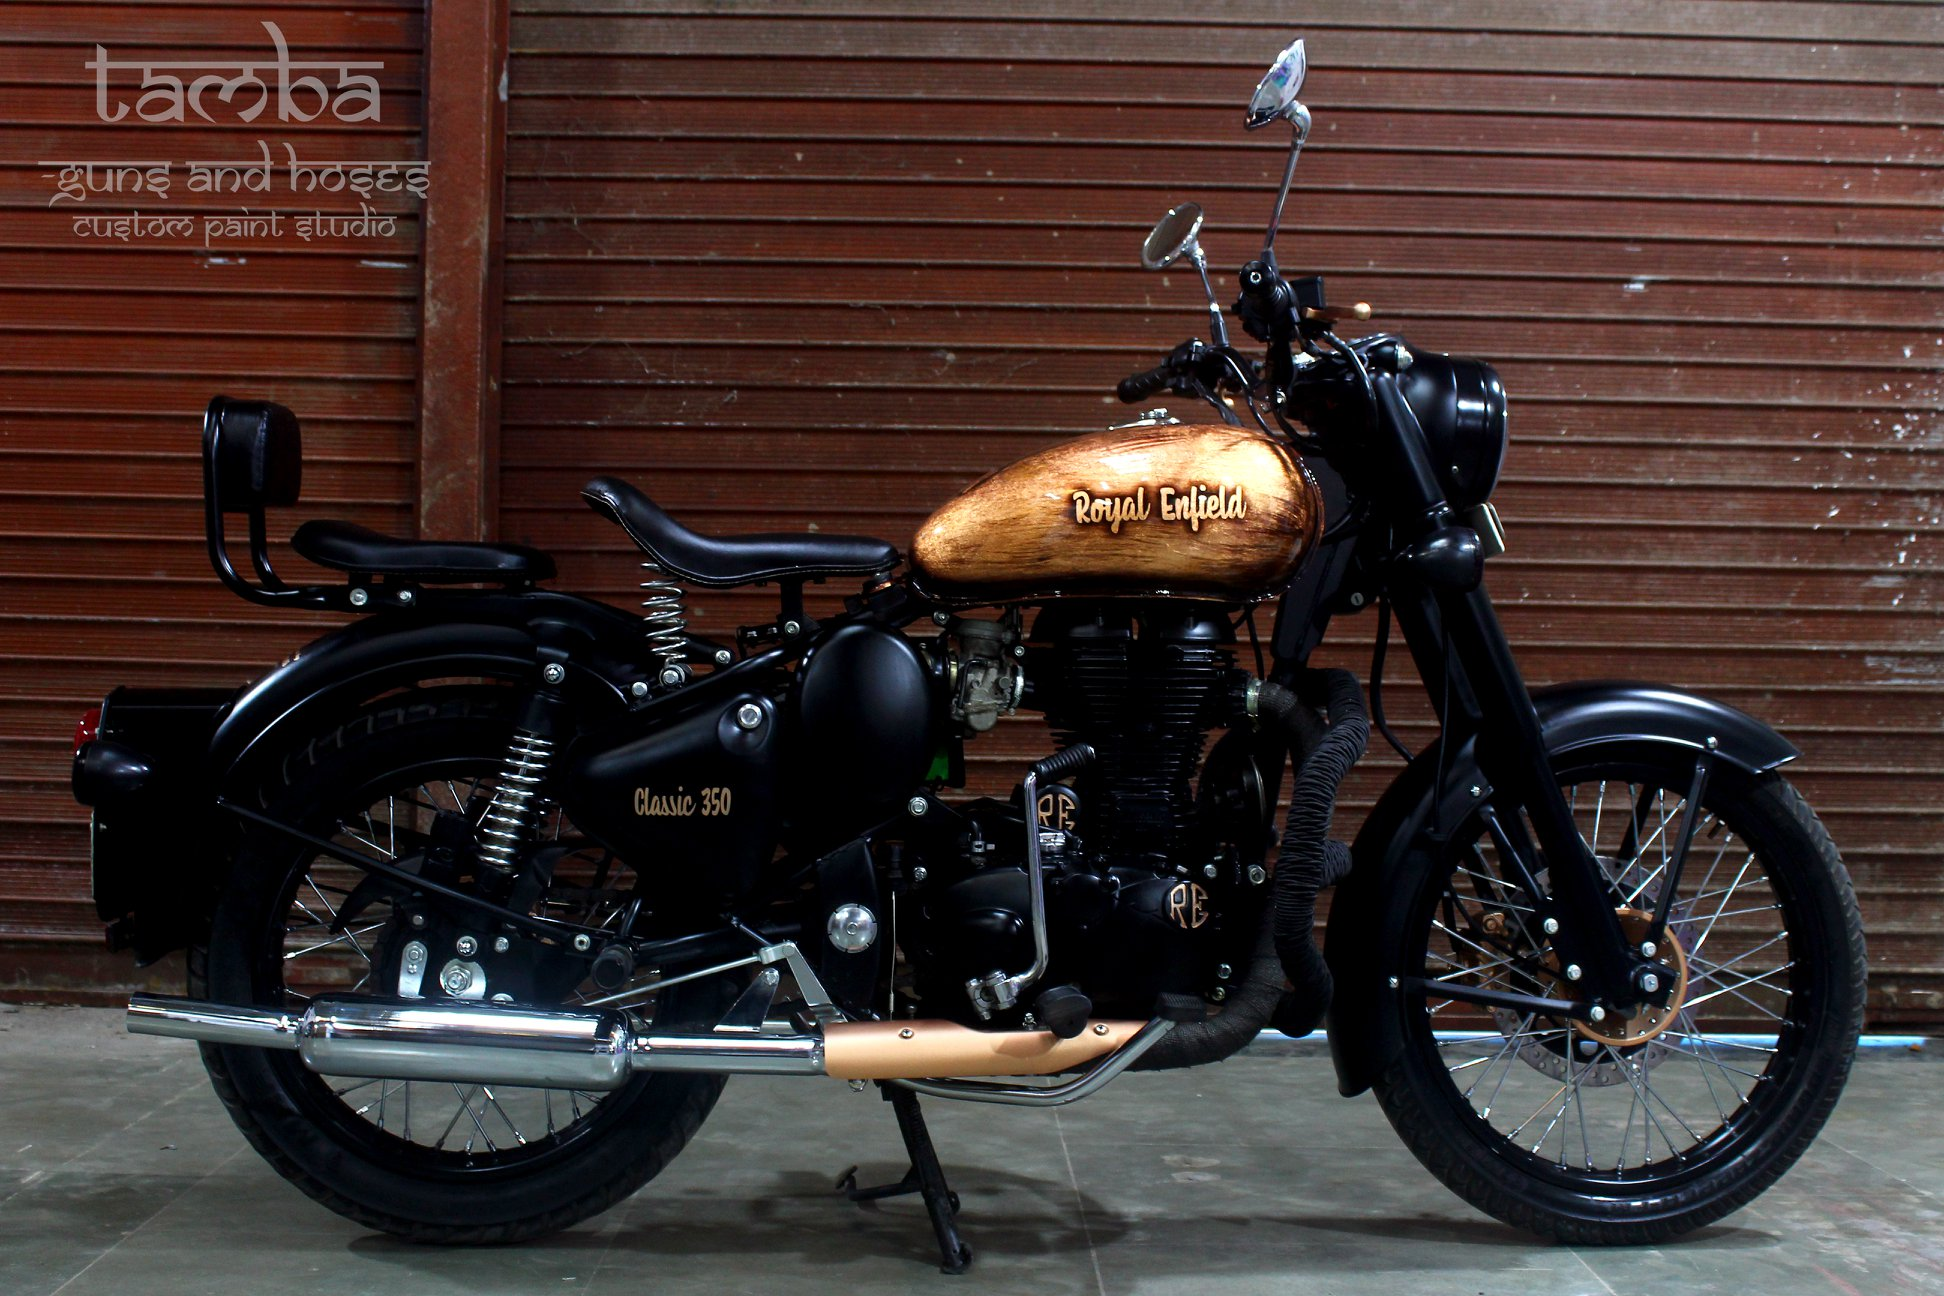 Meet Royal Enfield Classic 350 TAMBA